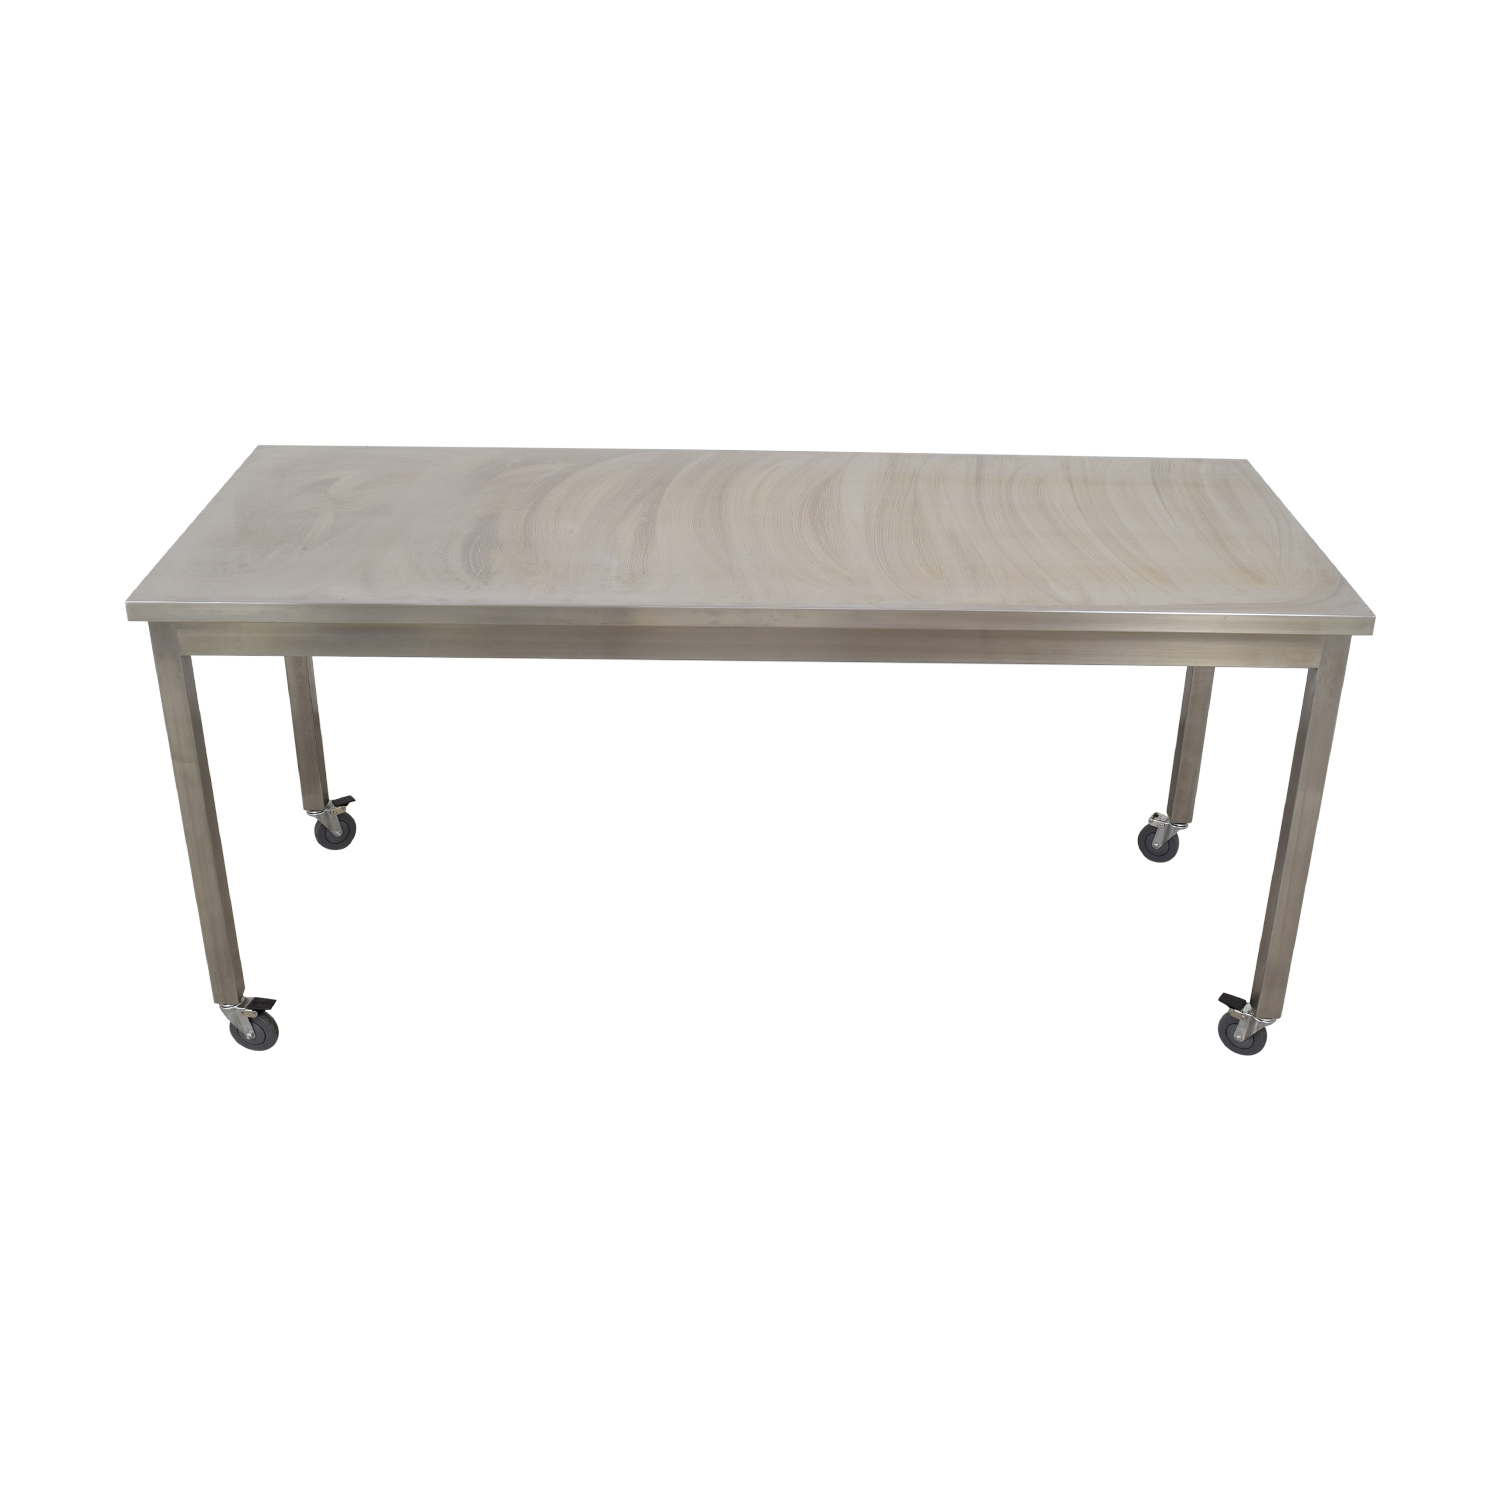 buy Bowery Kitchen Bowery Kitchen Stainless Steel High Top Table online